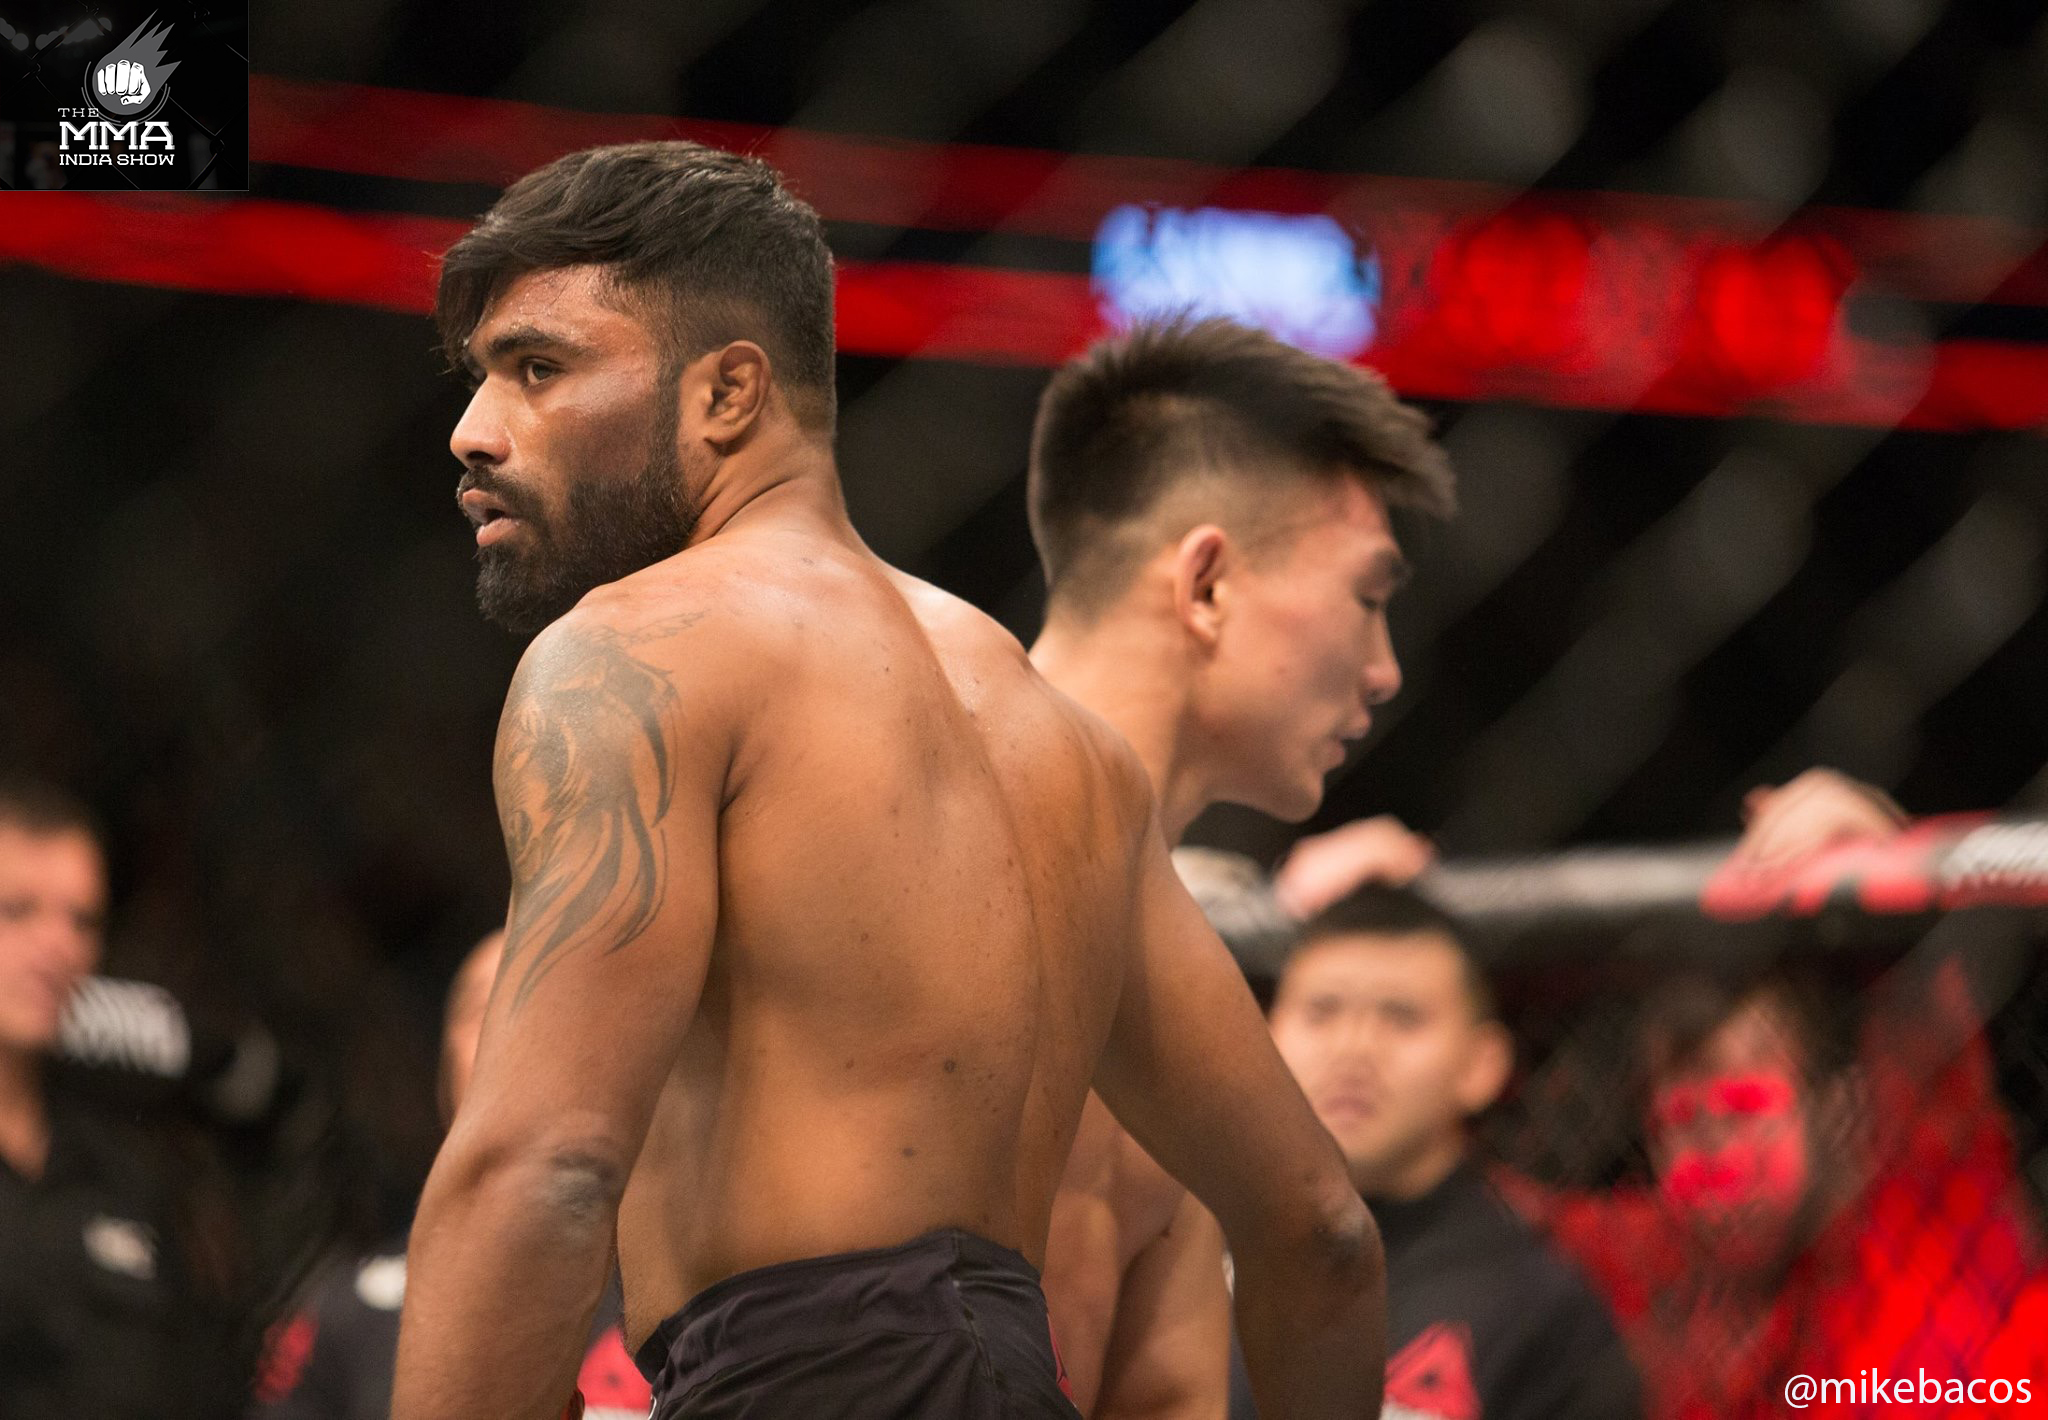 MMA India Exclusive: Update on why Bharat Kandare pulled out from UFC 227 and possible timeline for his return - Bharat Kandare